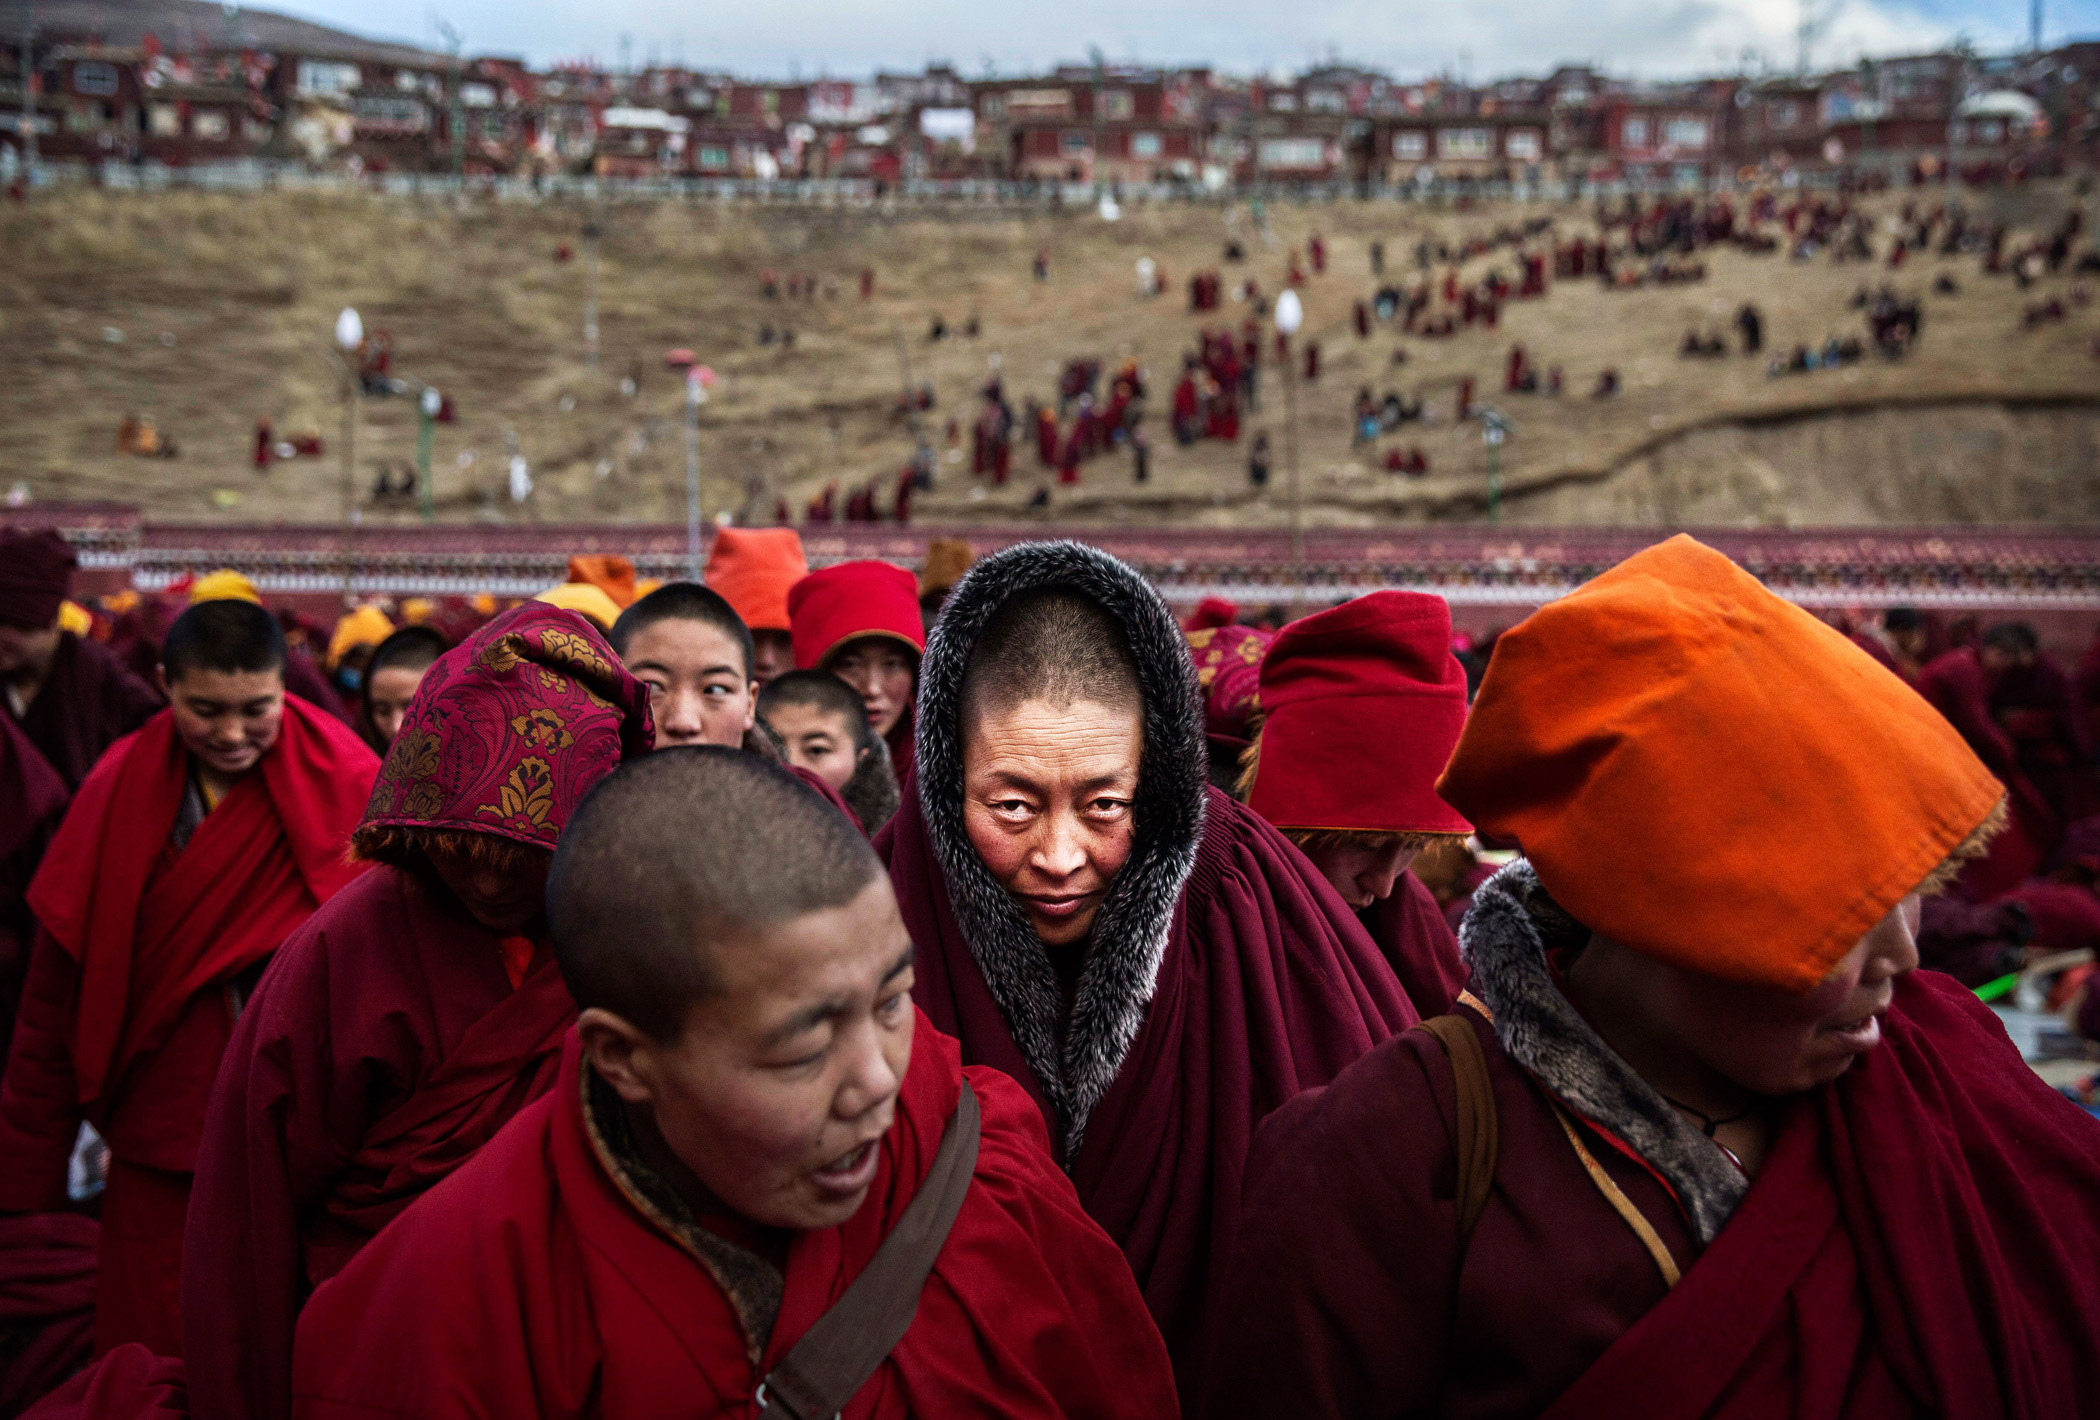 Tibetan Buddhist nuns participate in the annual Bliss Dharma Assembly at the Larung Wuming Buddhist Institute on Oct. 30, 2015 in Sertar county, in the remote Garze Tibetan Autonomous Prefecture, Sichuan province, China. The last of four annual assemblies, the week-long annual gathering takes place in the ninth month of the Tibetan calendar and marks Buddha's descent from the heavens.